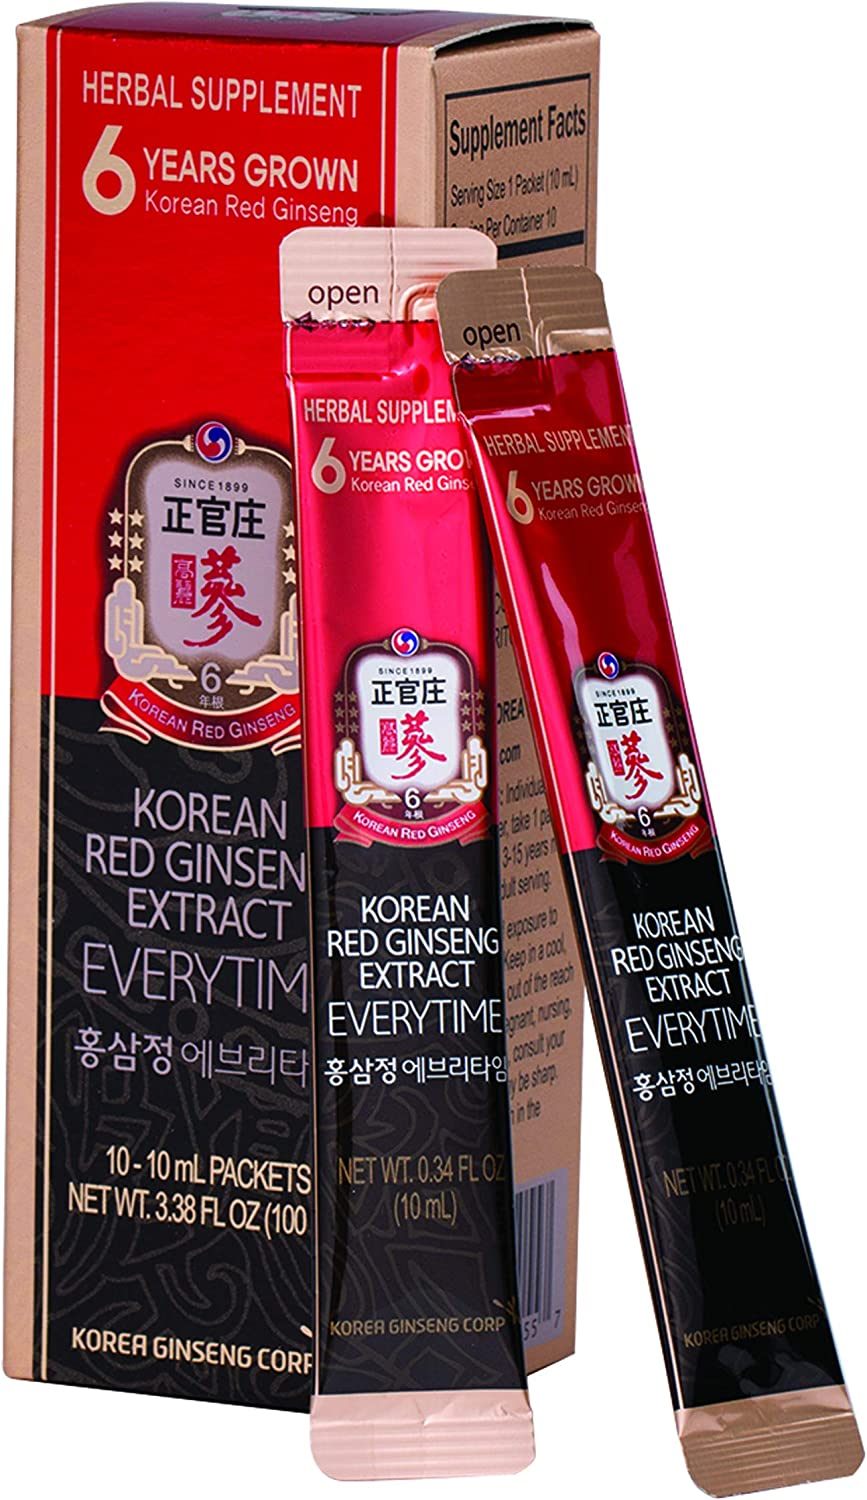 KGC Cheong Kwan Jang EveryTime 3000mg Korean Panax Red Ginseng Extract Portable Sticks for Healthy Immune Support and Energy Levels – 10 Stick Packs